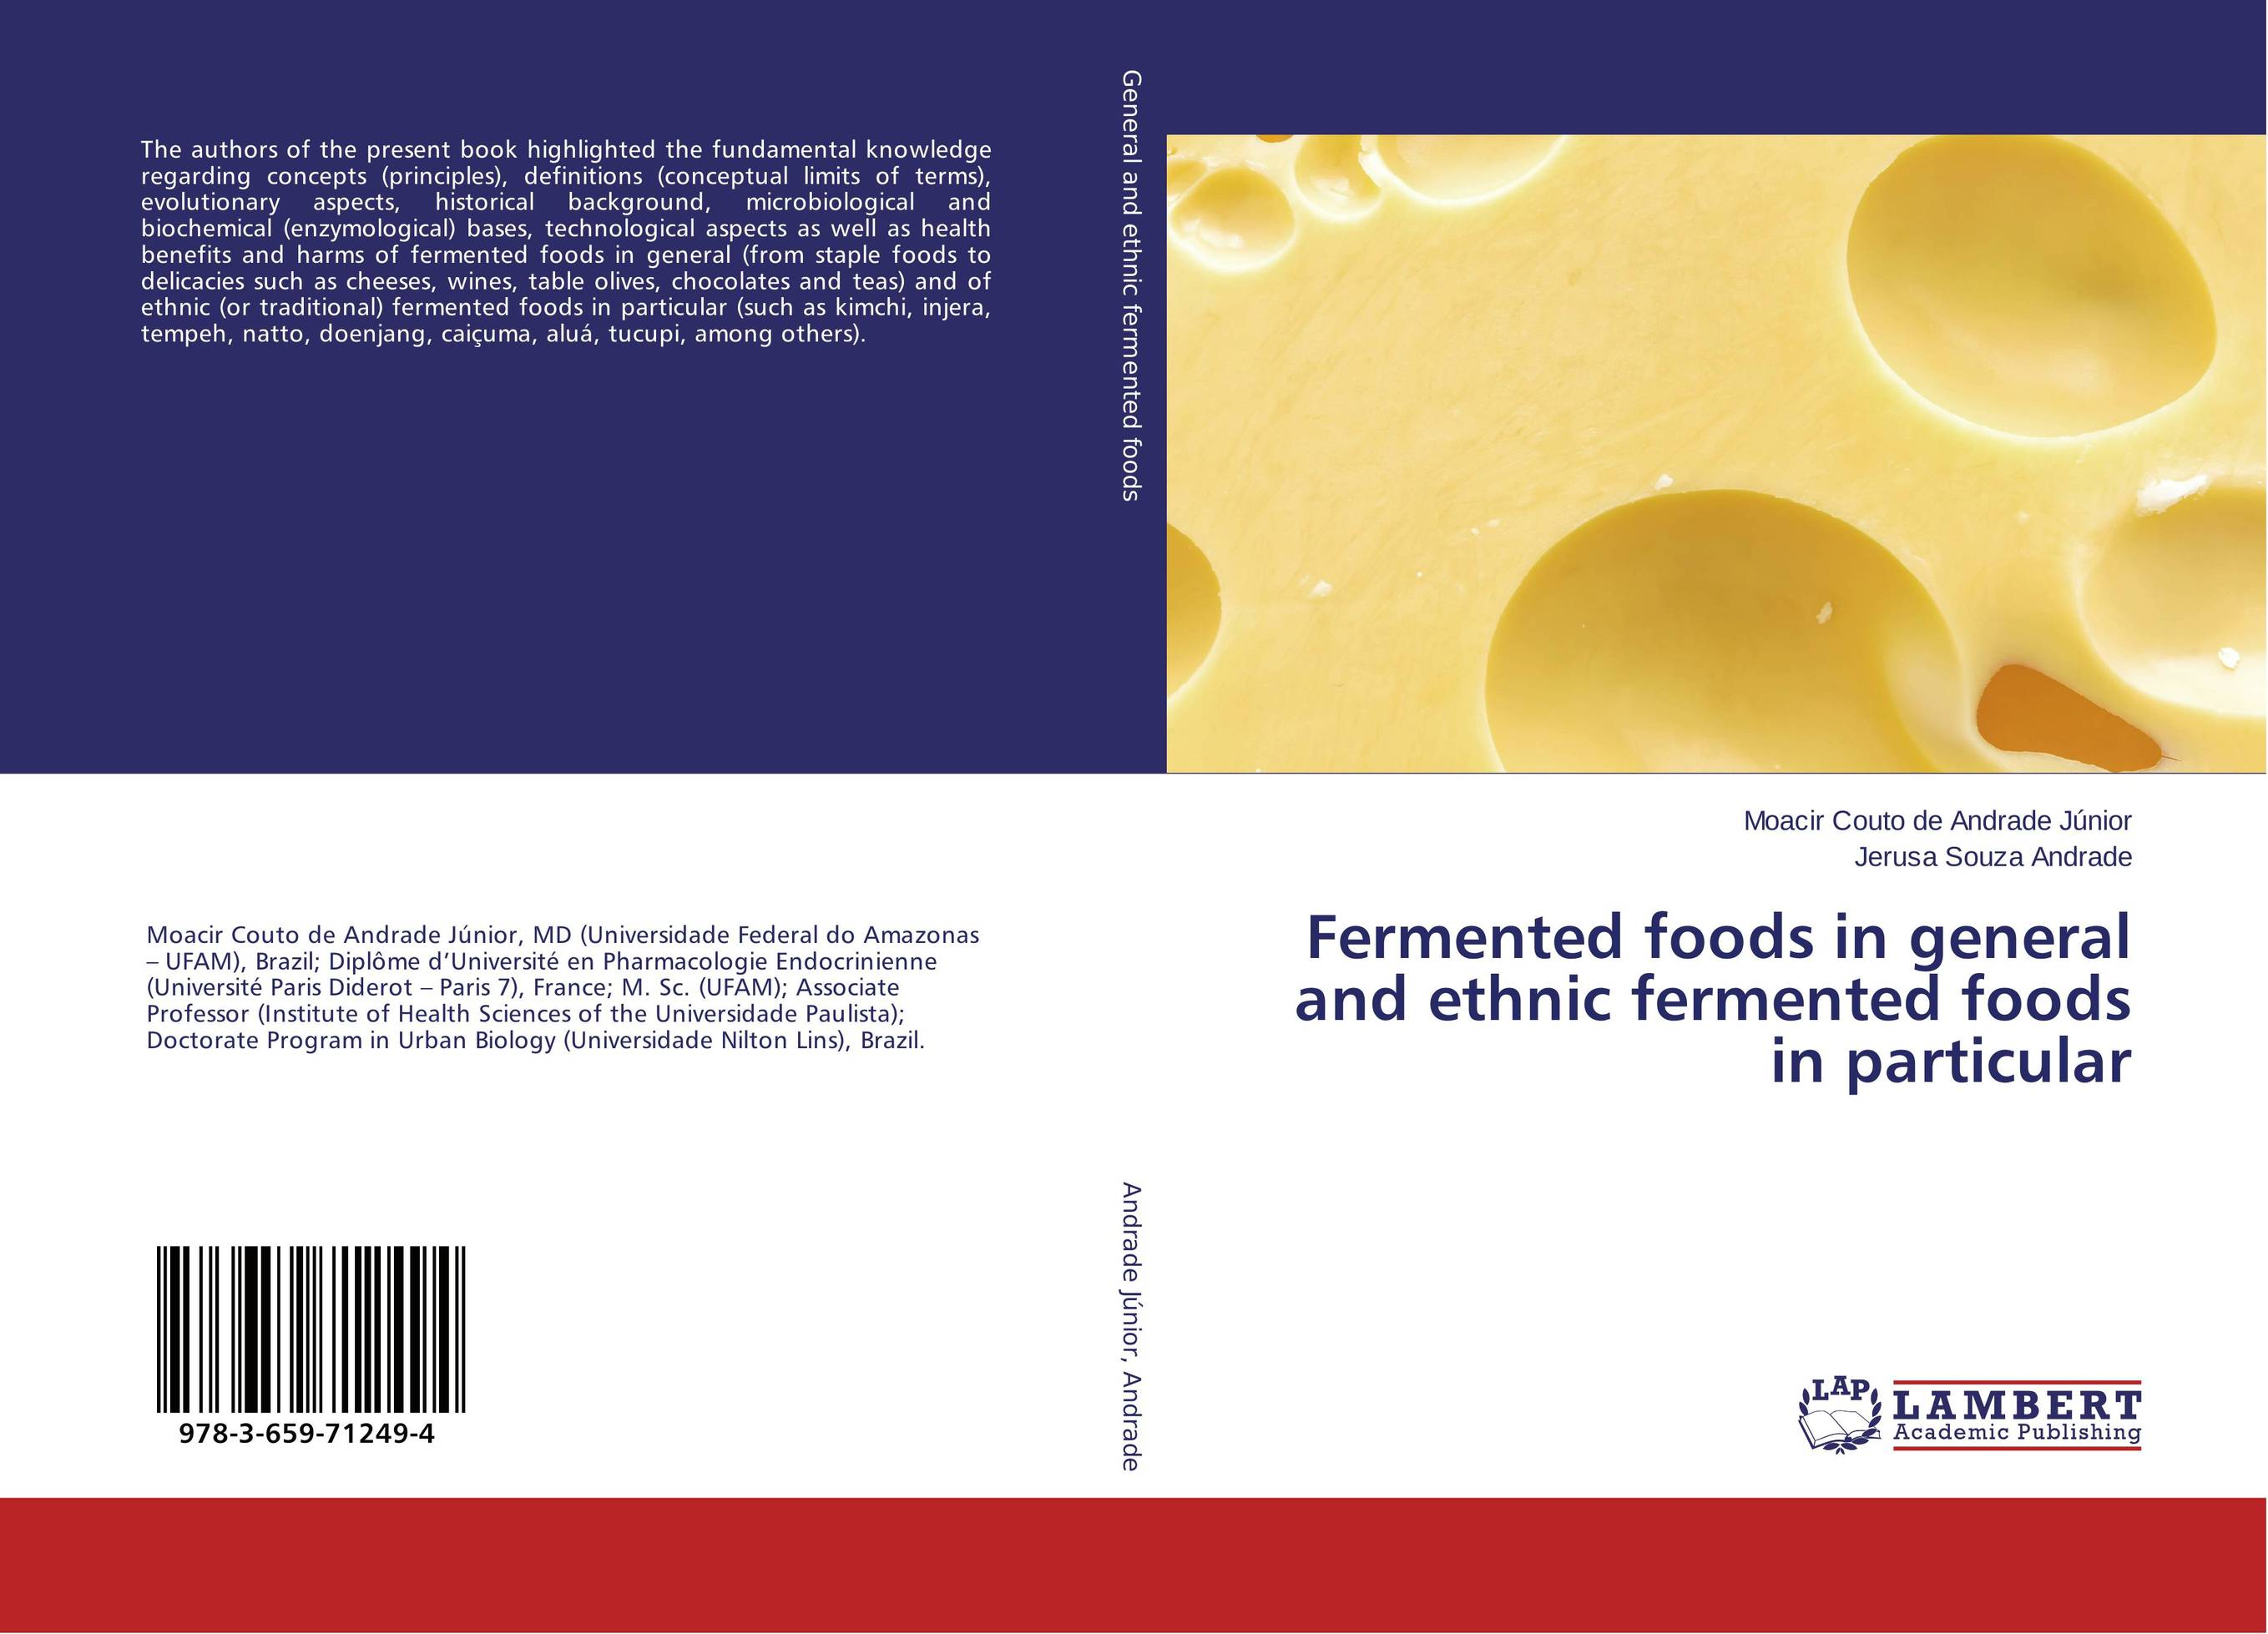 Fermented foods in general and ethnic fermented foods in particular malaysian ethnic festival foods